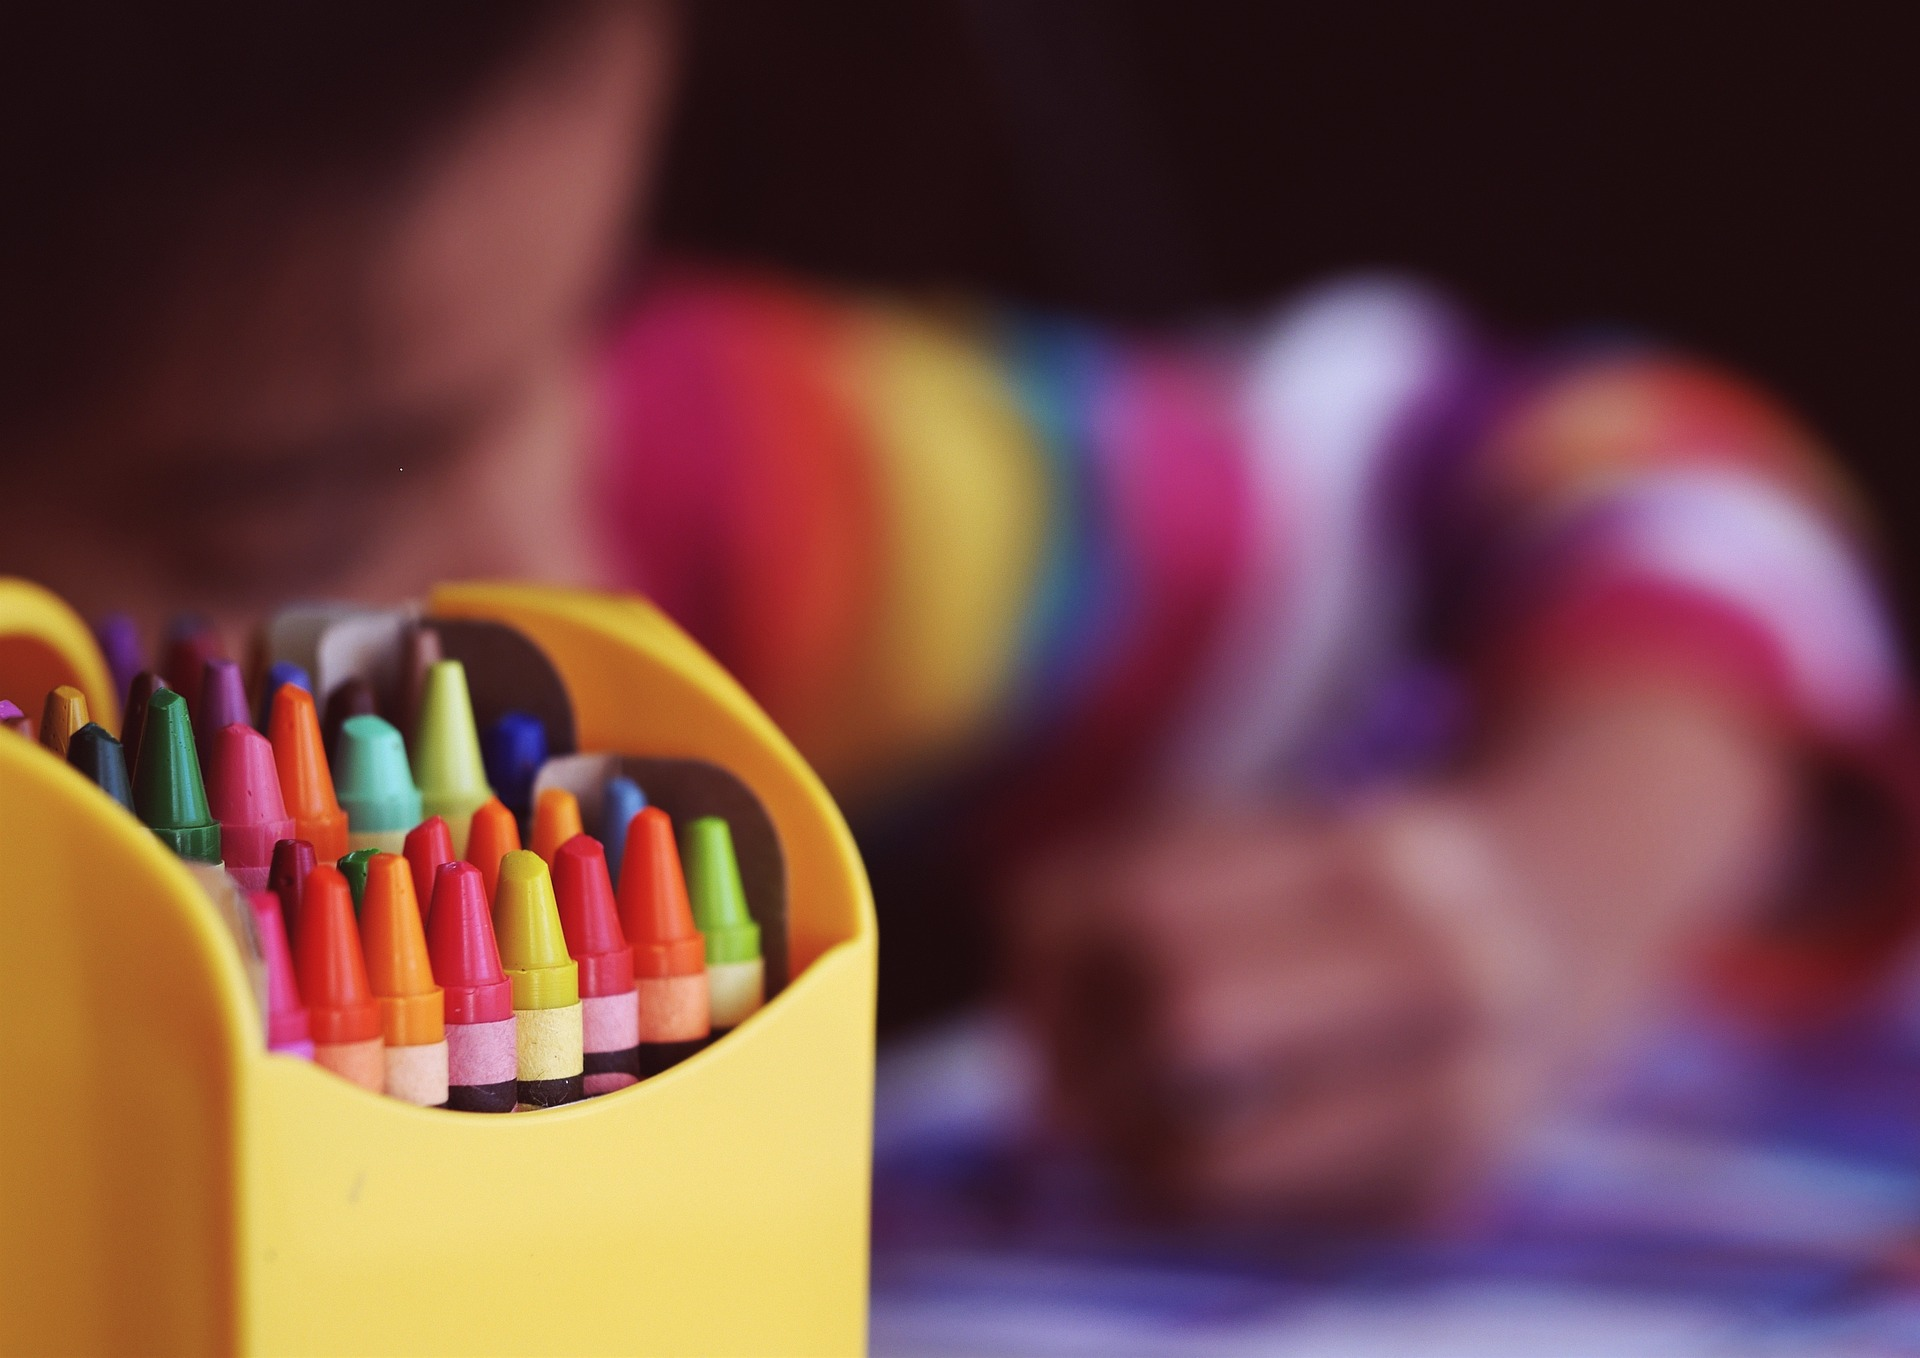 image of crayons with blurred image of child coloring in background